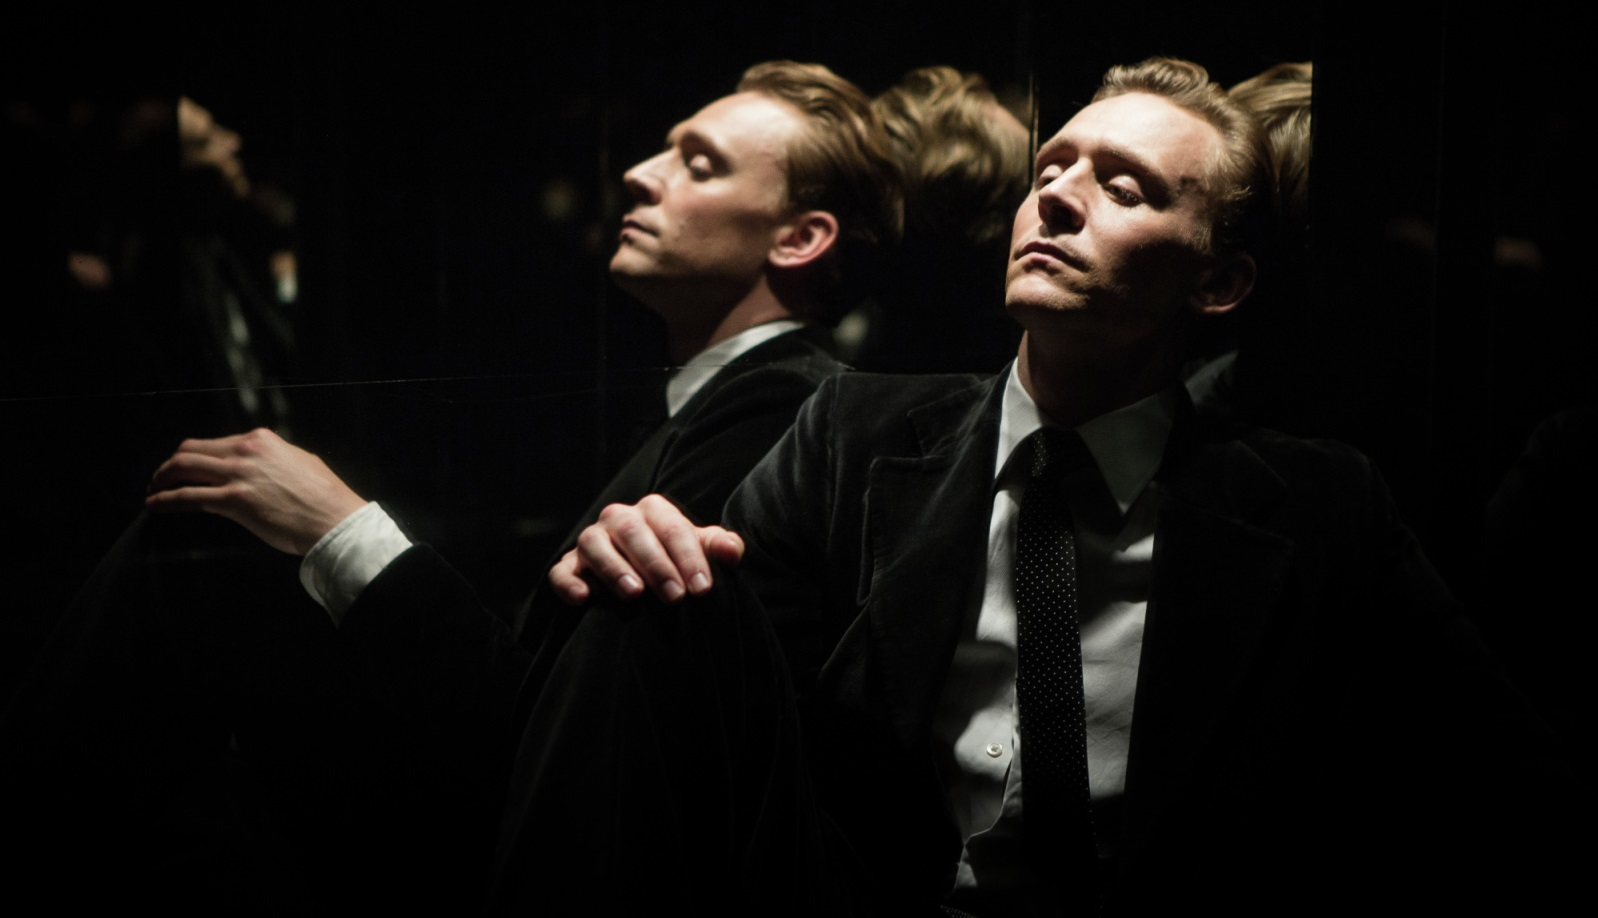 Tom Hiddleston plays Dr. Robert Laing in 'High Rise,' a popular film at TIFF.